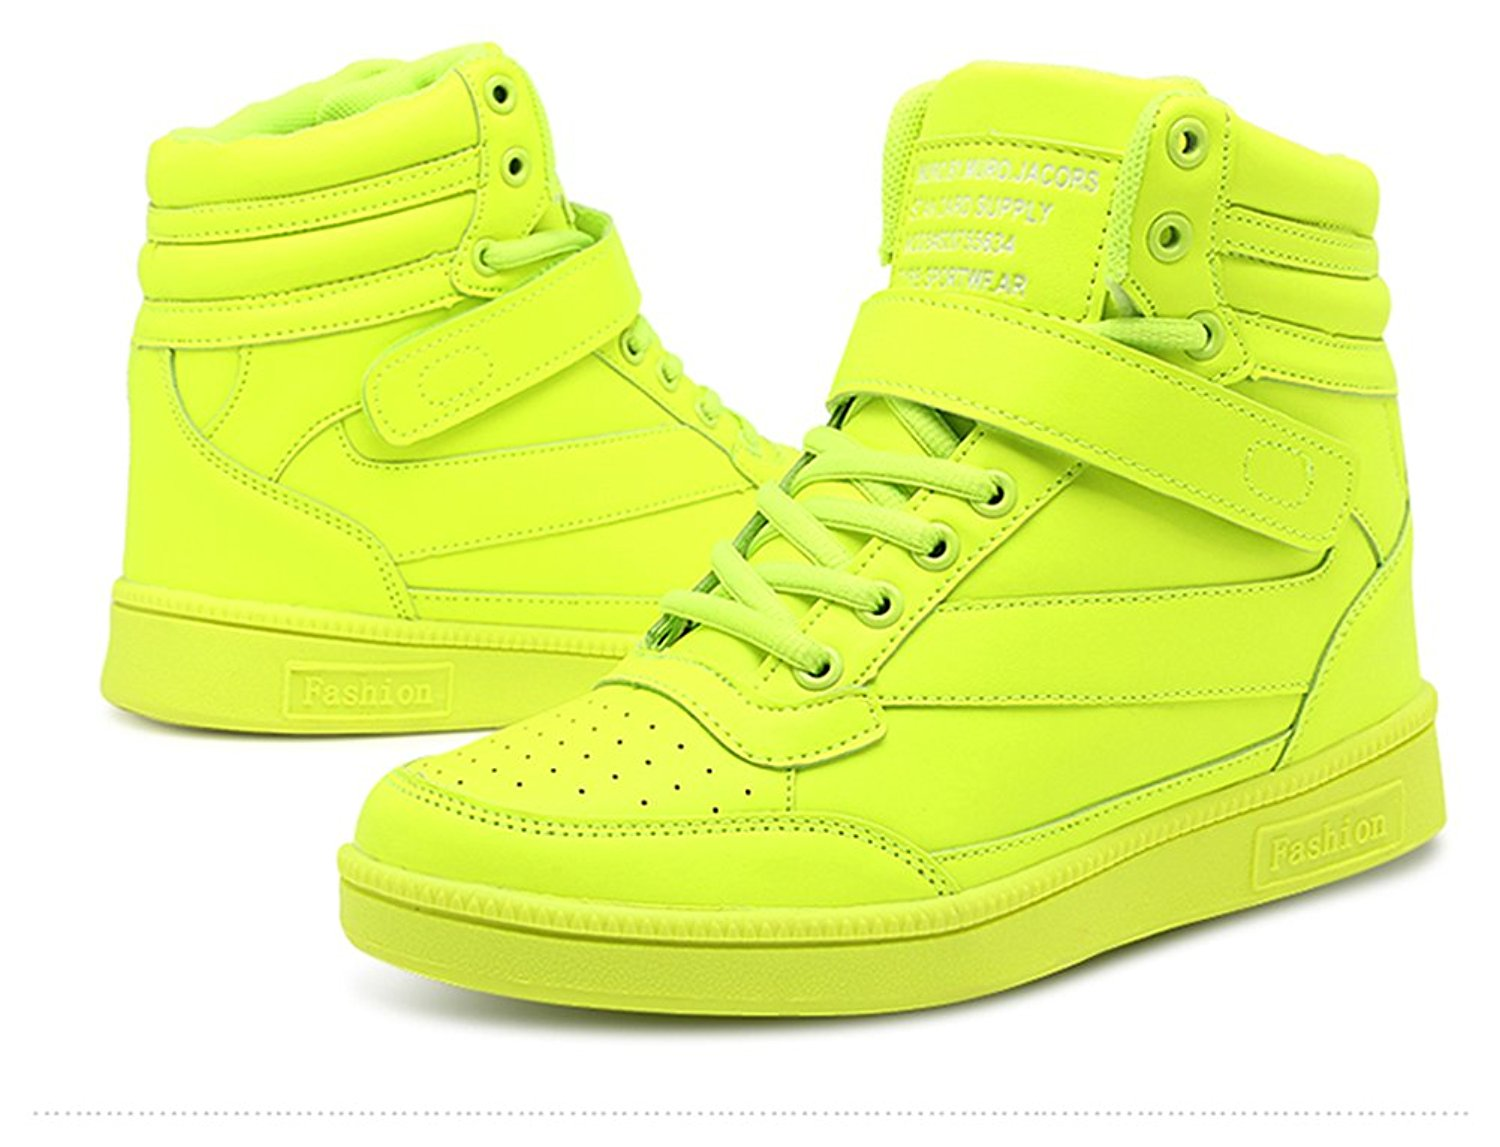 23a8c38788a5 Get Quotations · Wedges Sneakers for Women Hightop